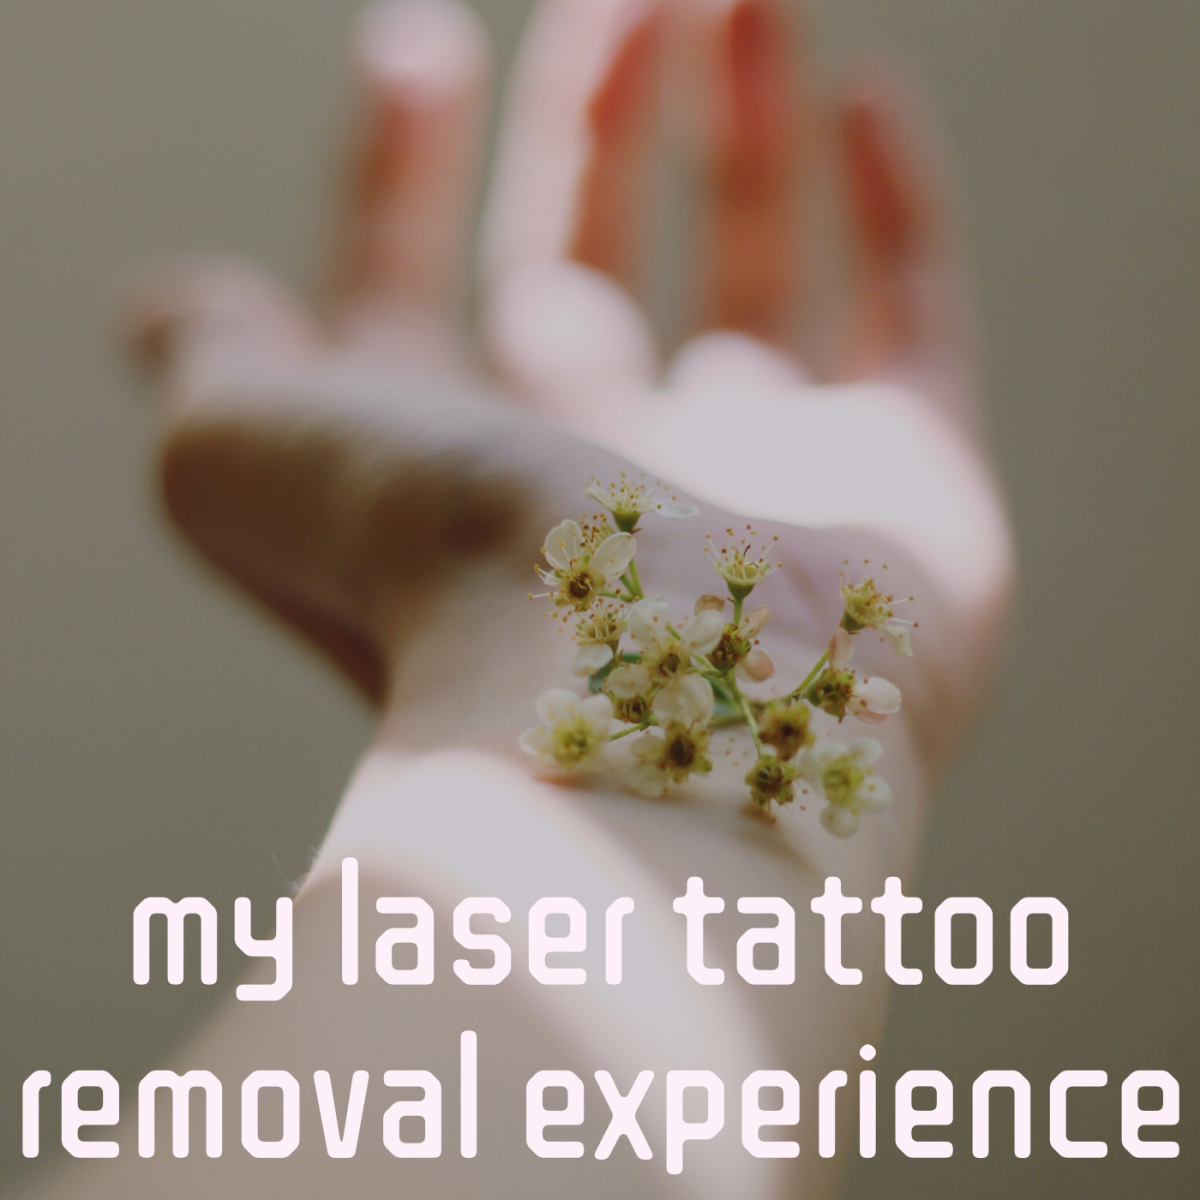 My personal laser tattoo removal experience.